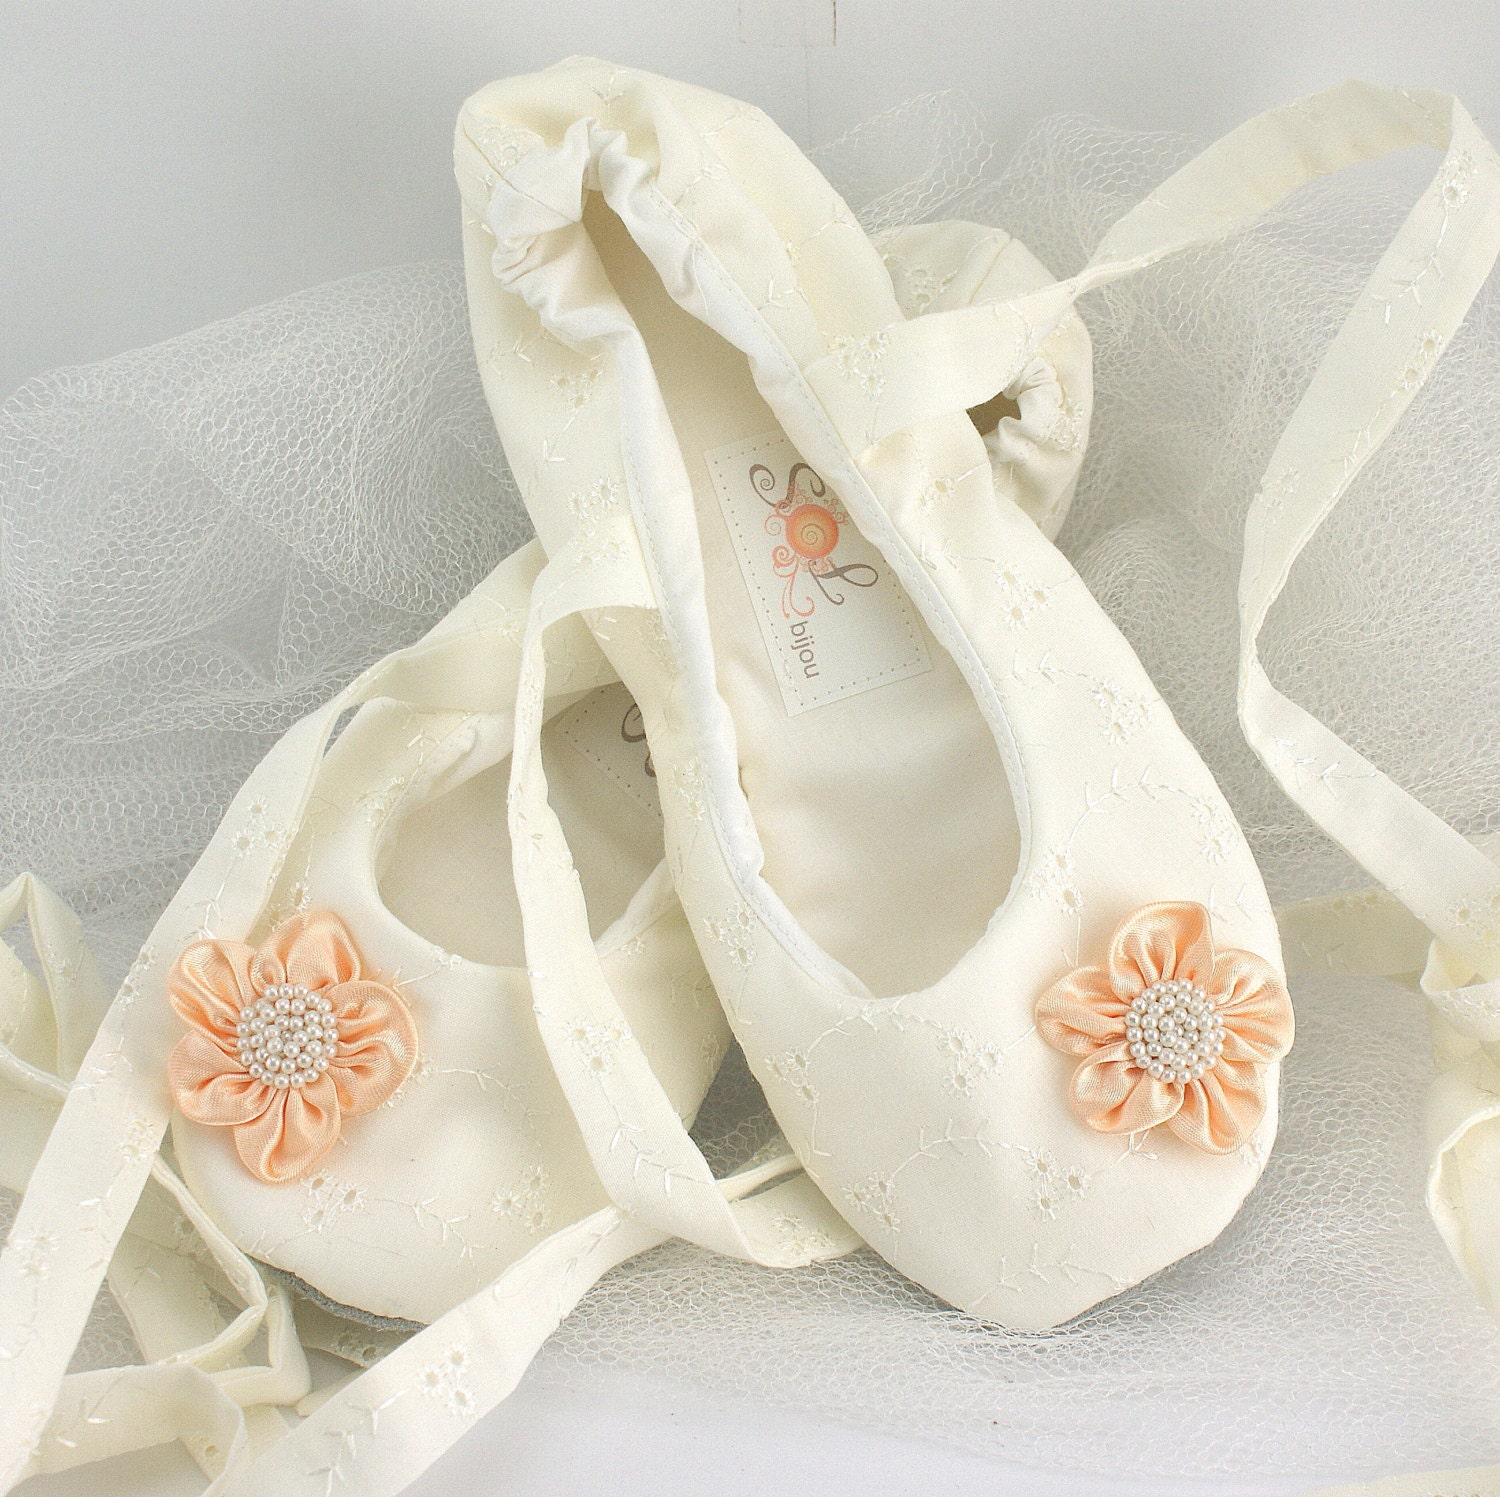 Ballet Bridal Flats Slippers In Ivory And Peach With By SolBijou